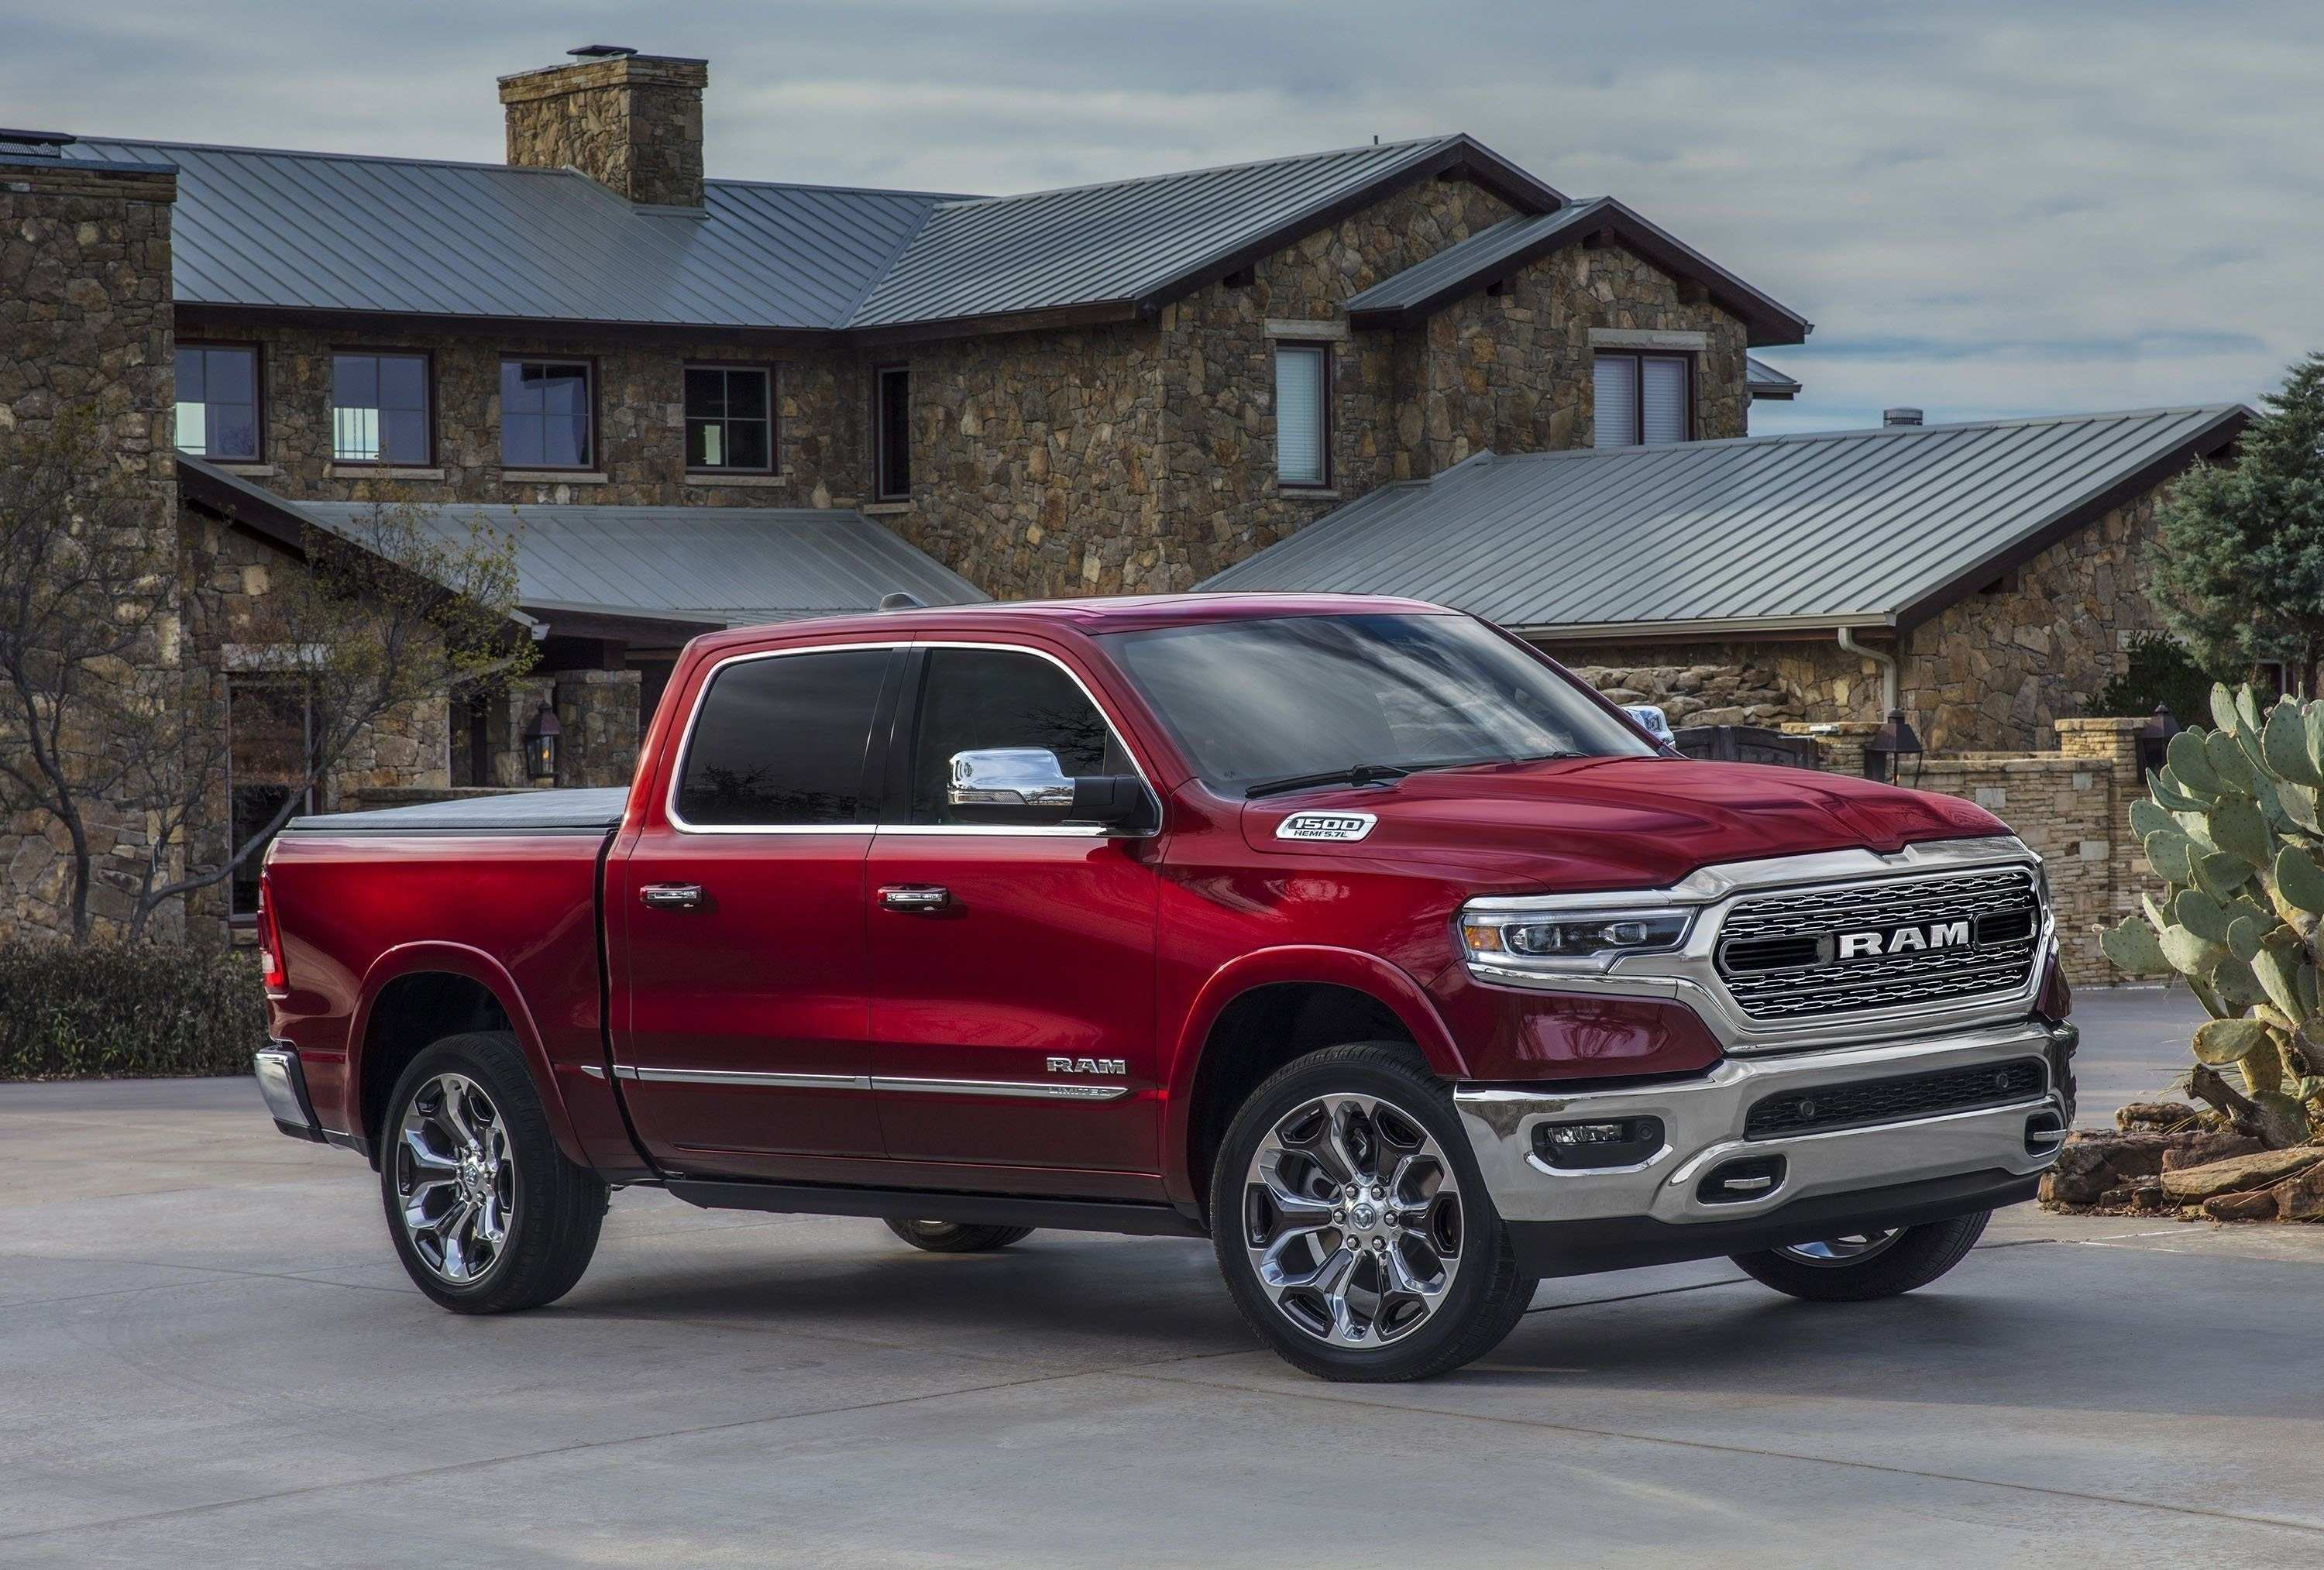 80 All New 2020 Dodge Ram 1500 Pictures